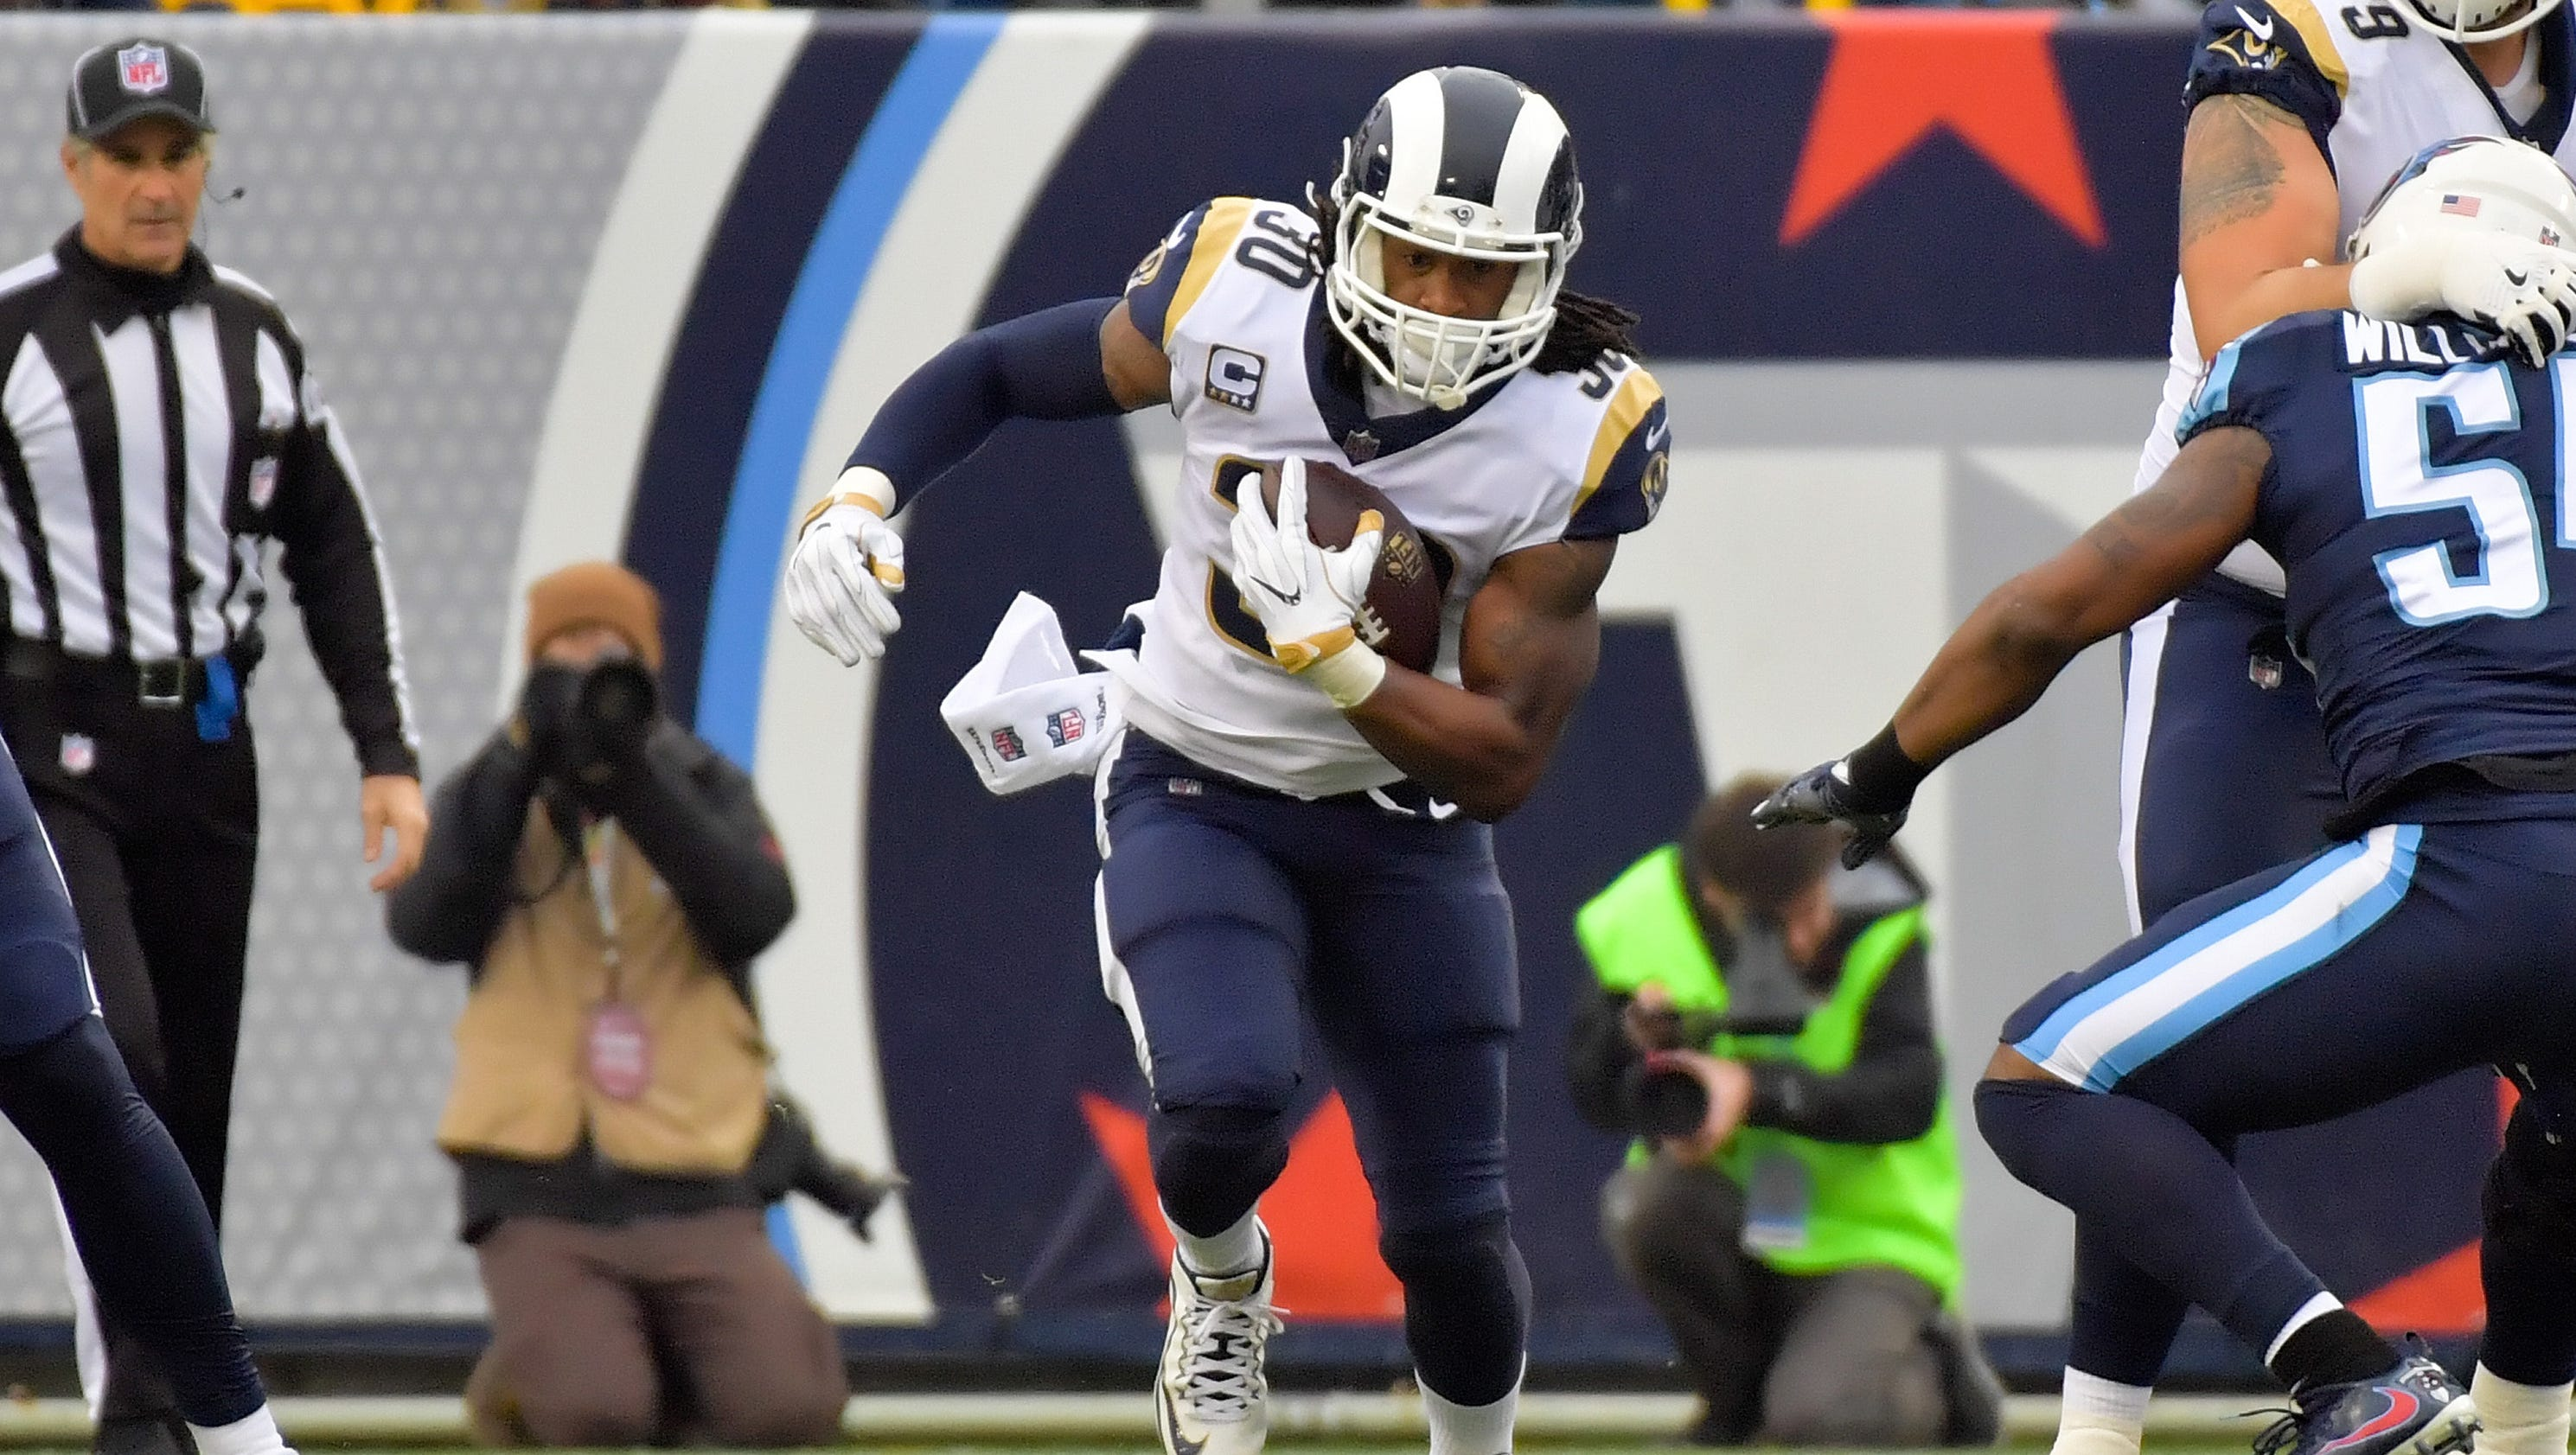 636497274014003335-usp-nfl-los-angeles-rams-at-tennessee-titans-96192285